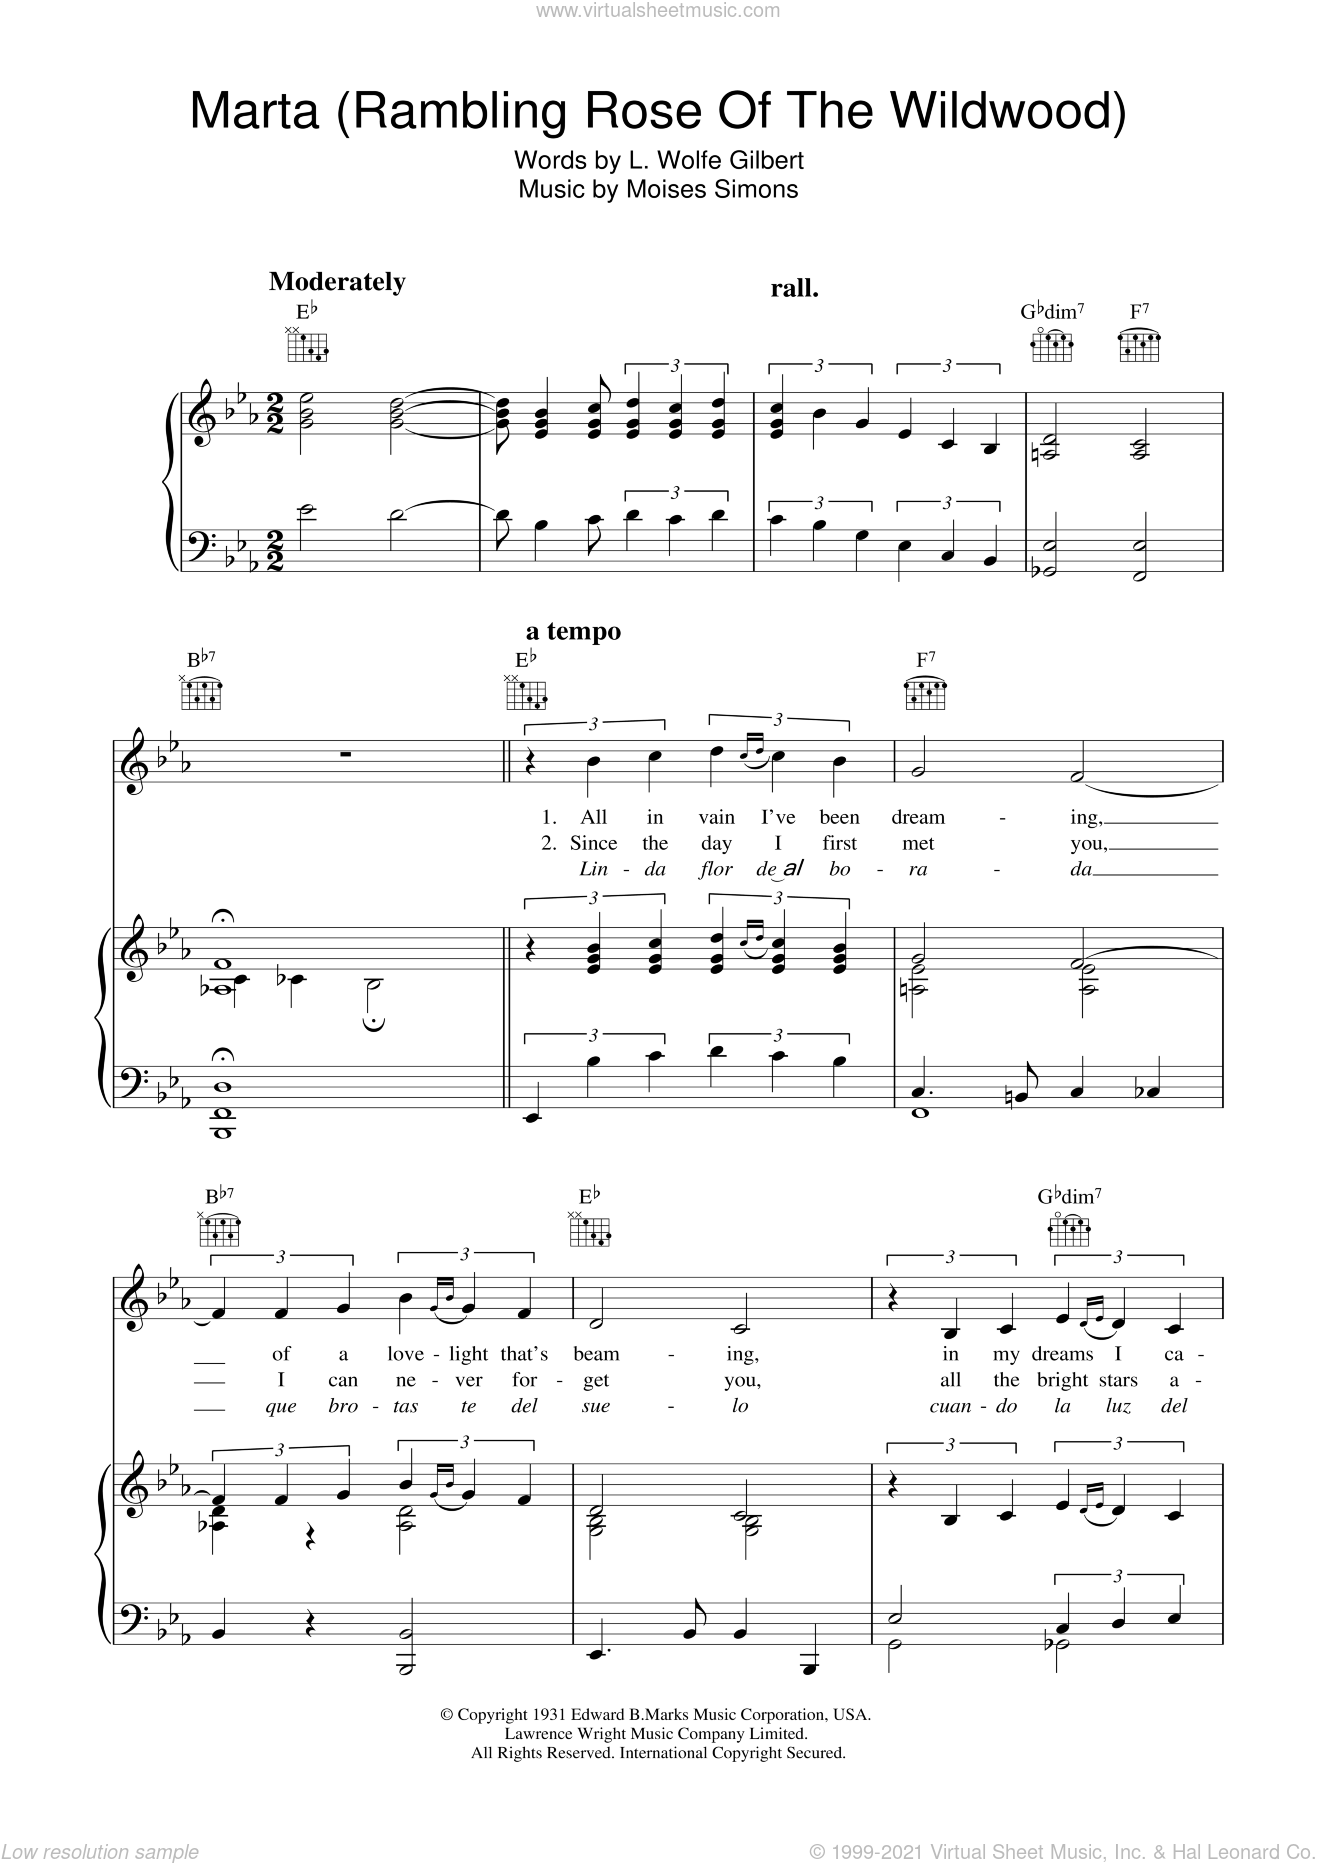 Marta (Rambling Rose Of The Wildwood ) sheet music for voice, piano or guitar by Moises Simons. Score Image Preview.